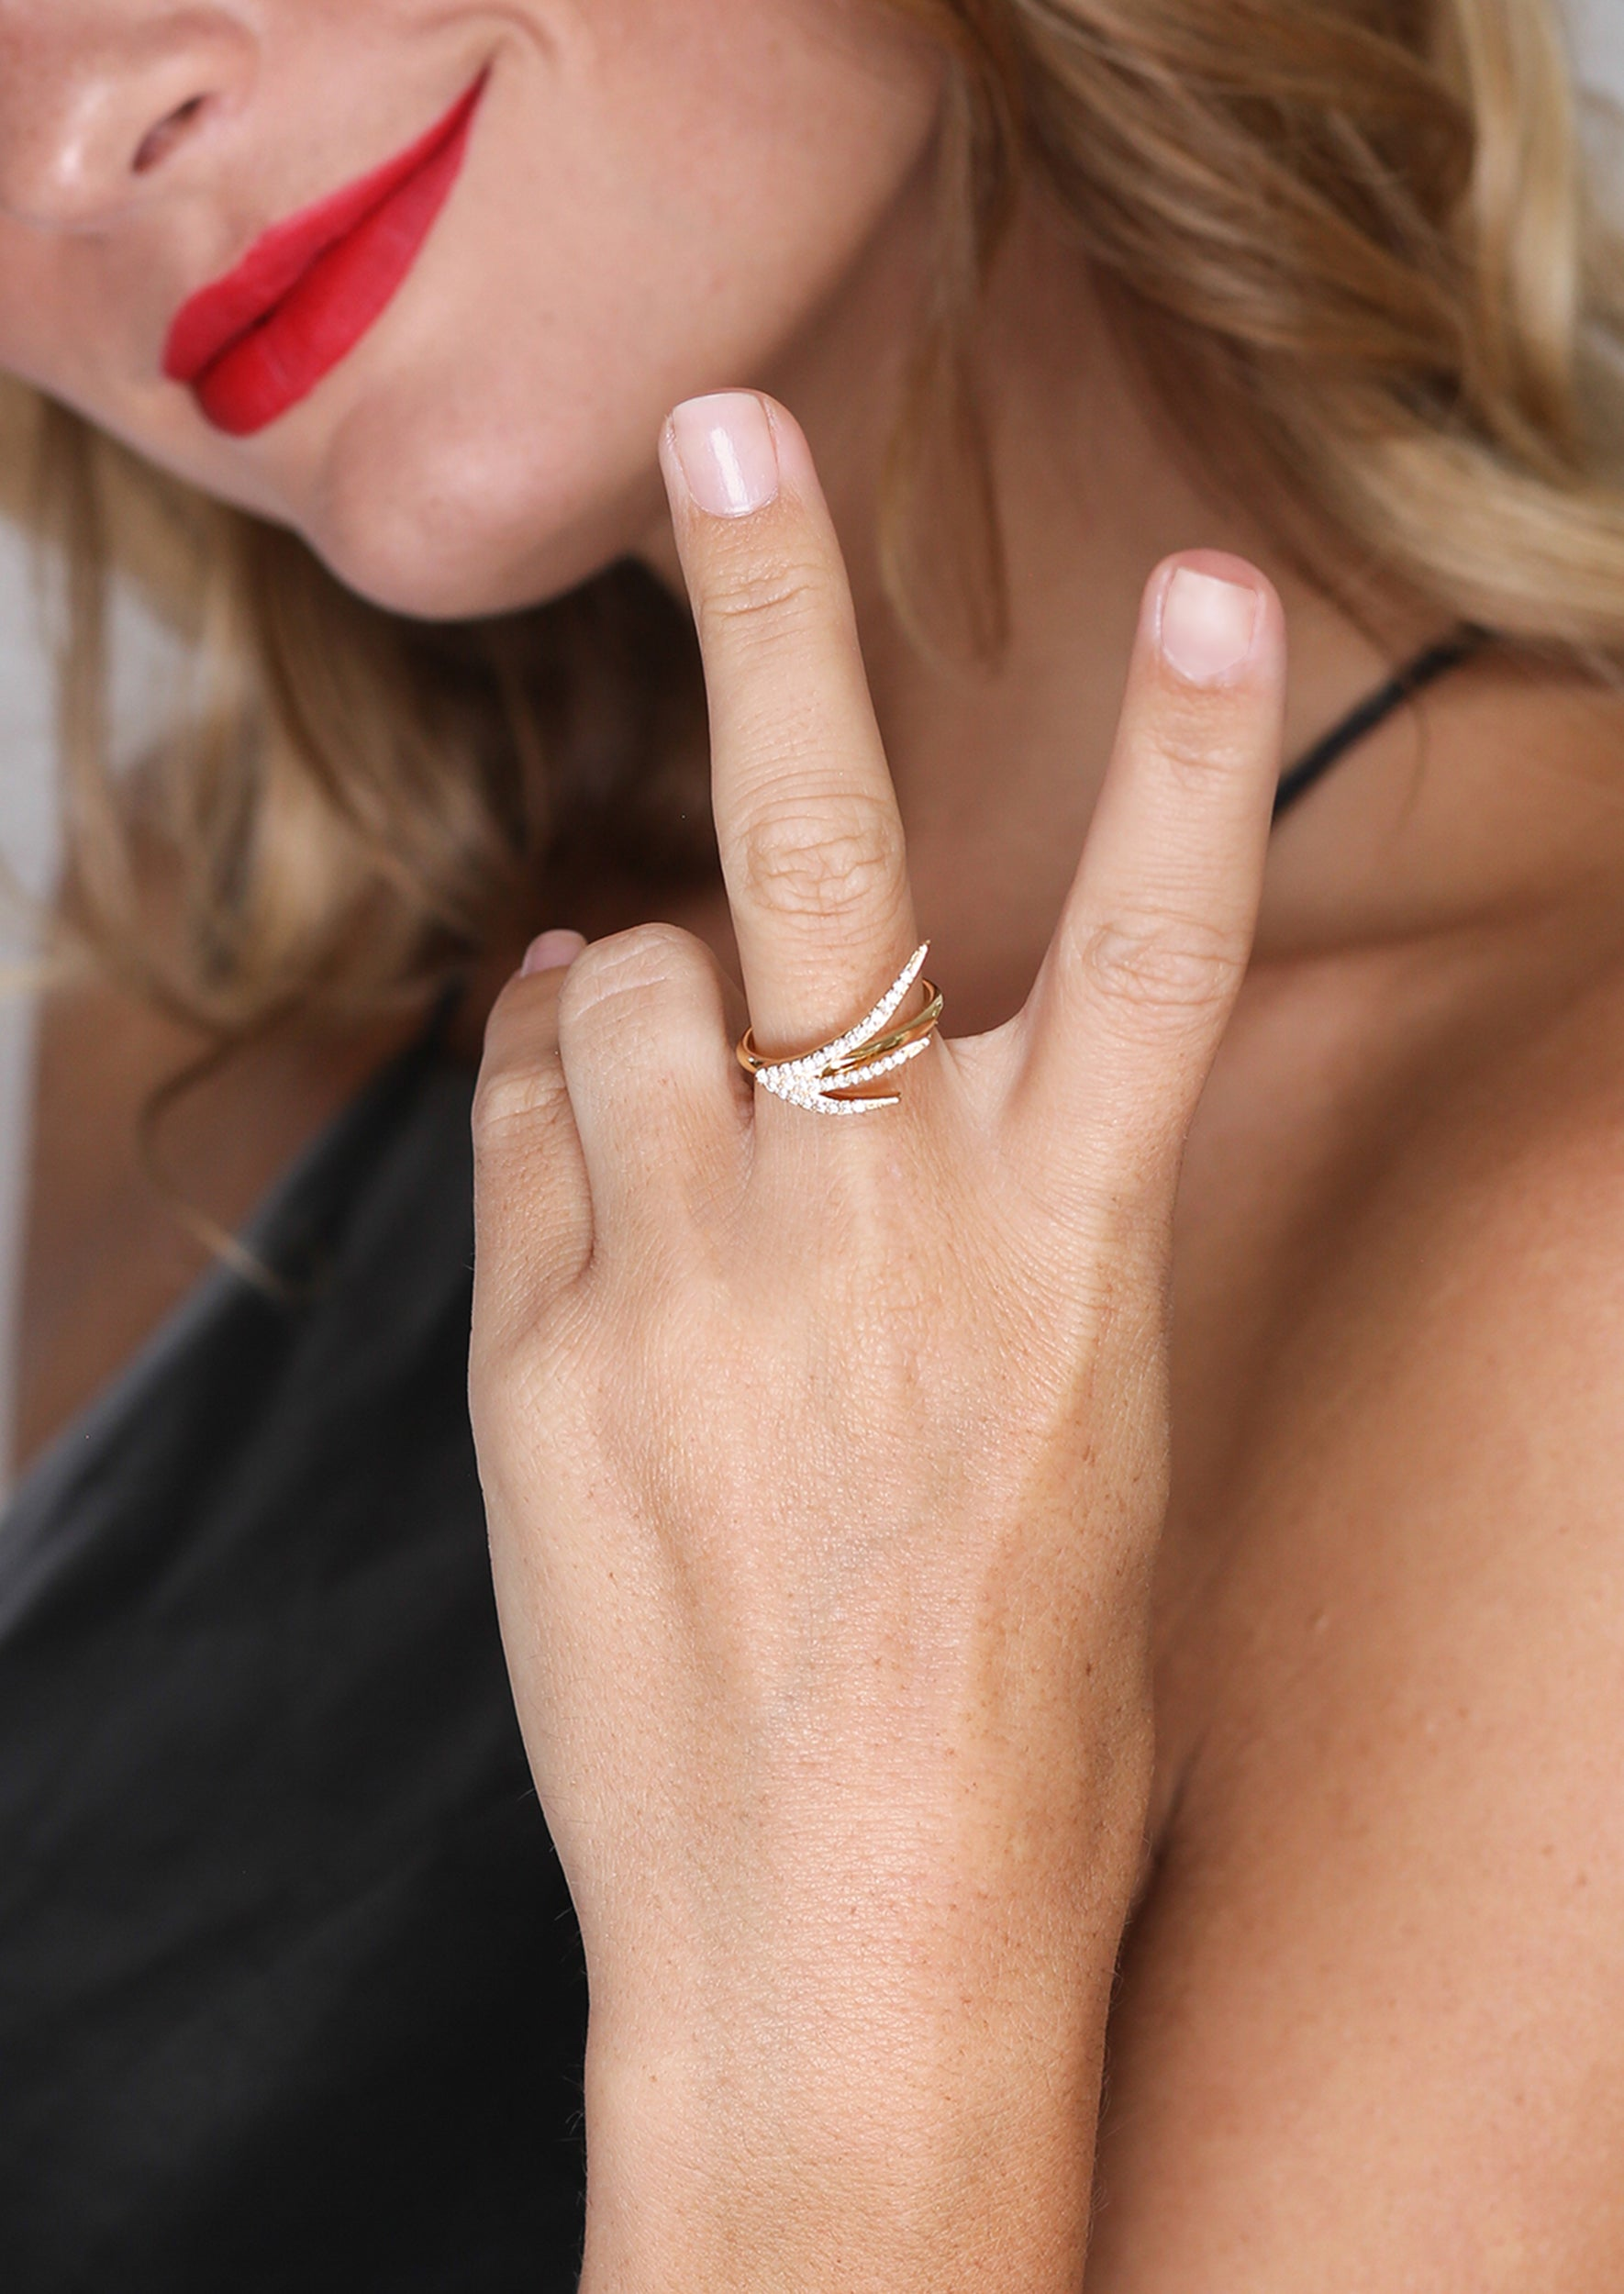 SPARK RING - Jules Smith - 14K Gold Plated - Boho Jewelry